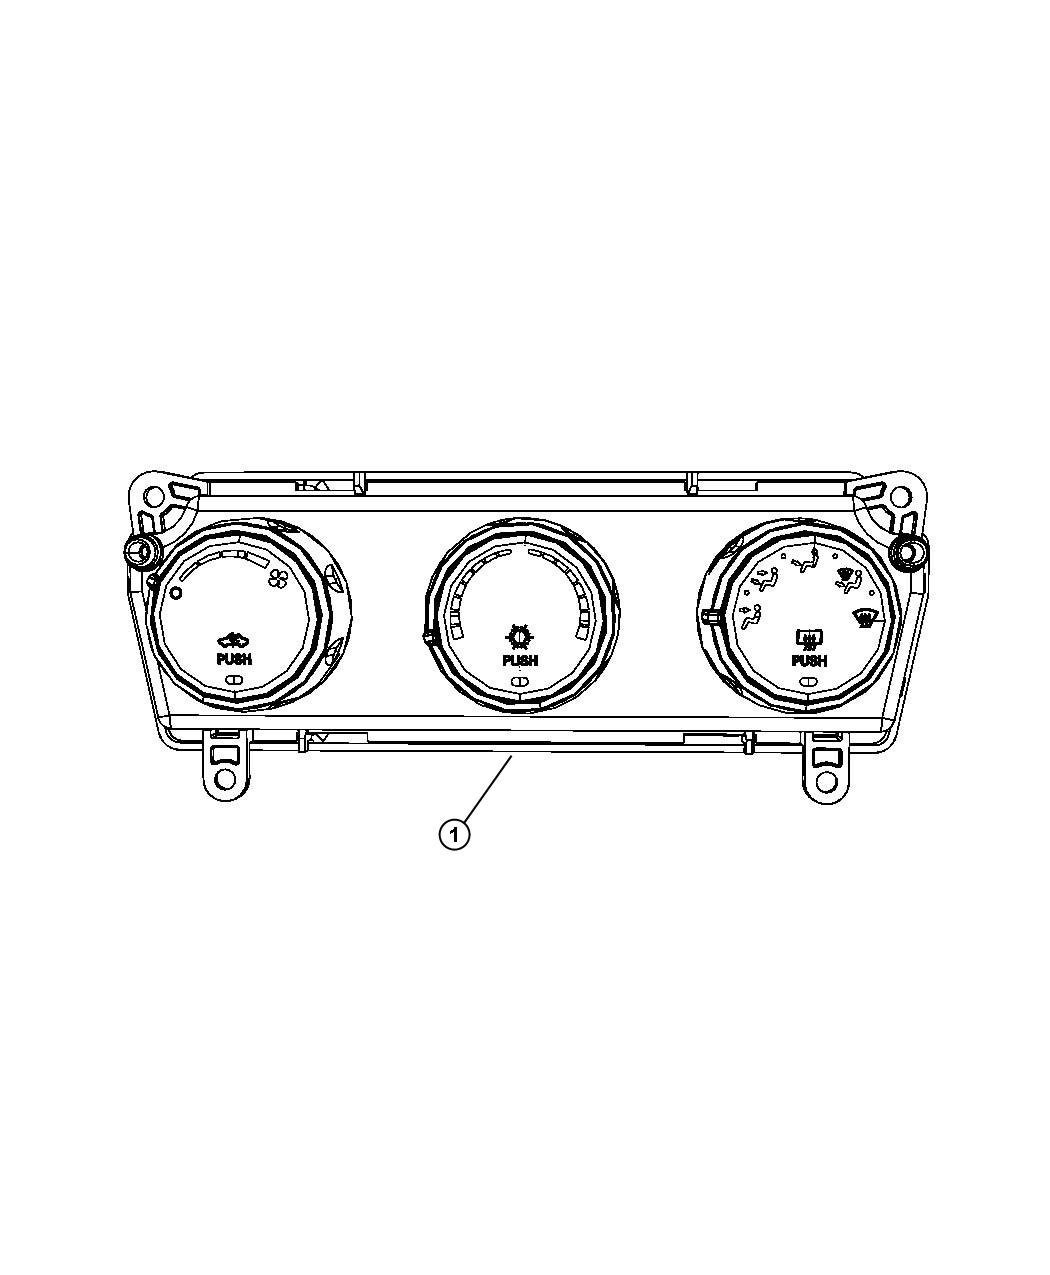 Jeep Liberty Control Used For A C And Heater